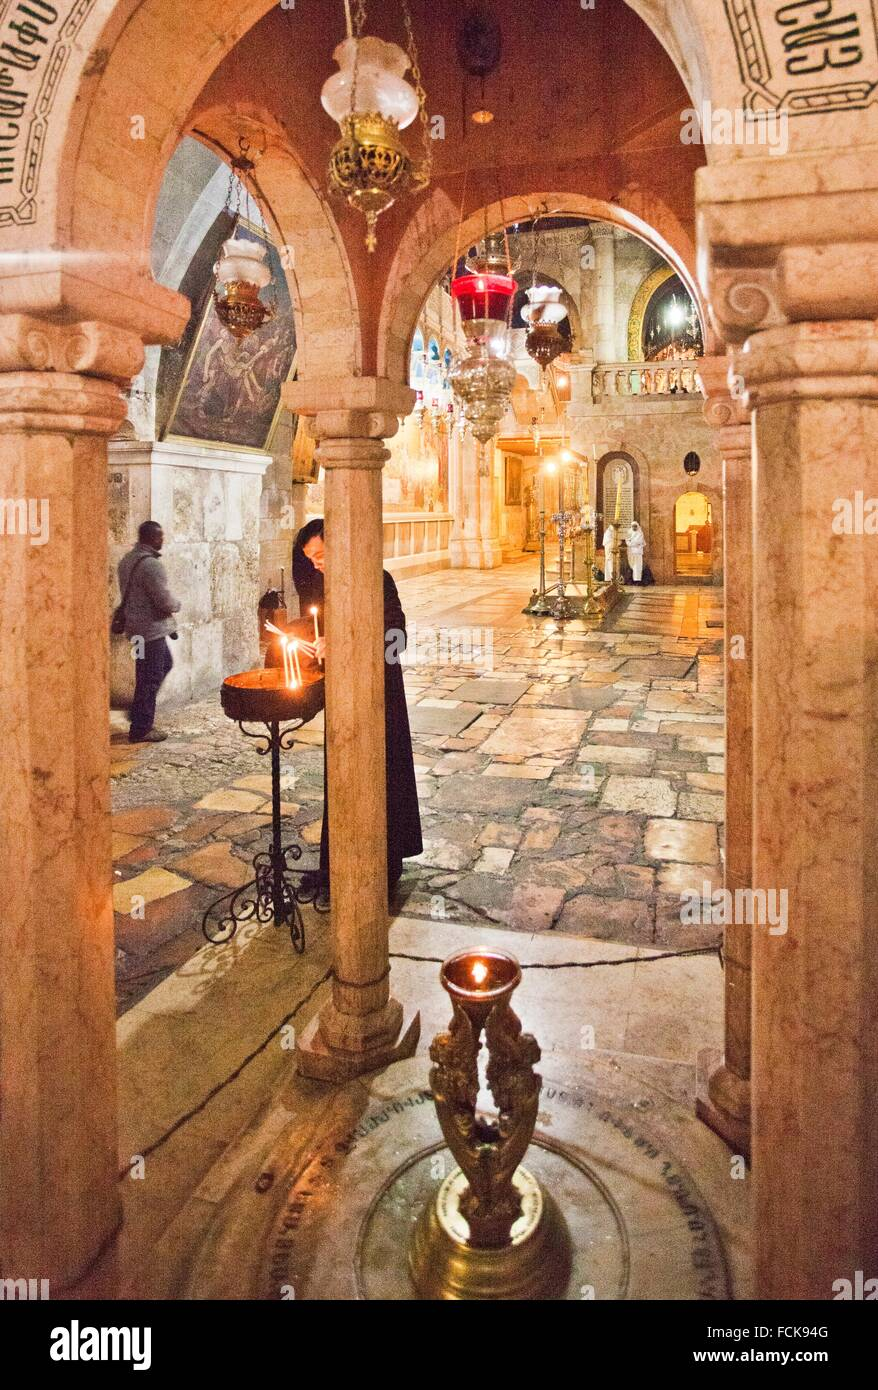 On background Stone of Unction, Church of the Holy Sepulchre, Old City, UNESCO World Heritage Site, Jerusalem, Israel. Stock Photo